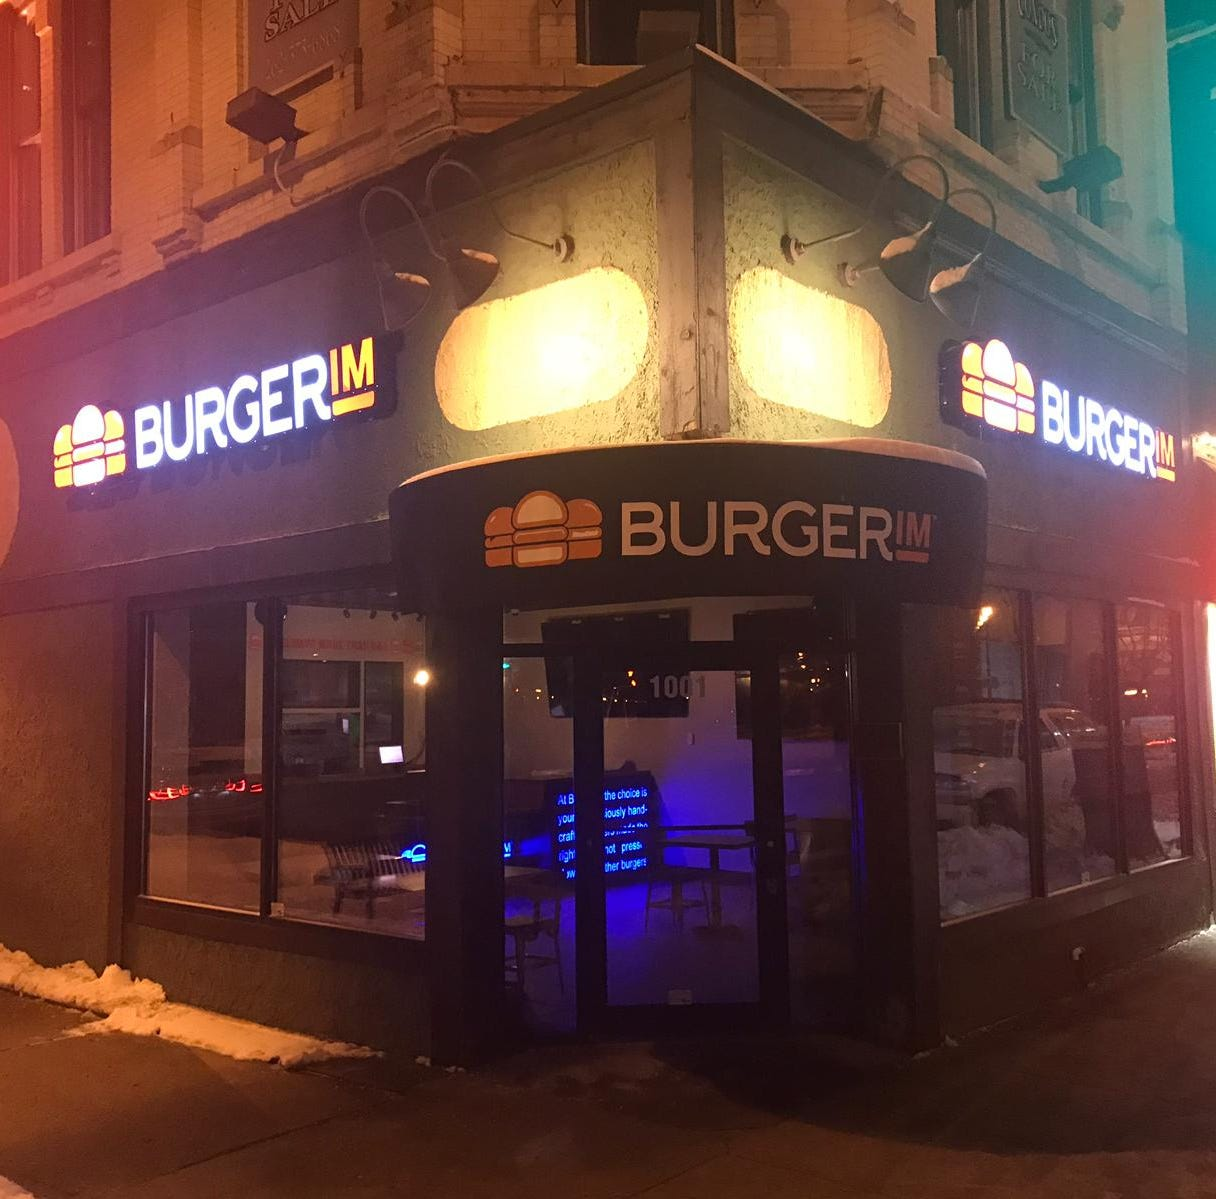 Mini-burger restaurant Burgerim opens a downtown Milwaukee location